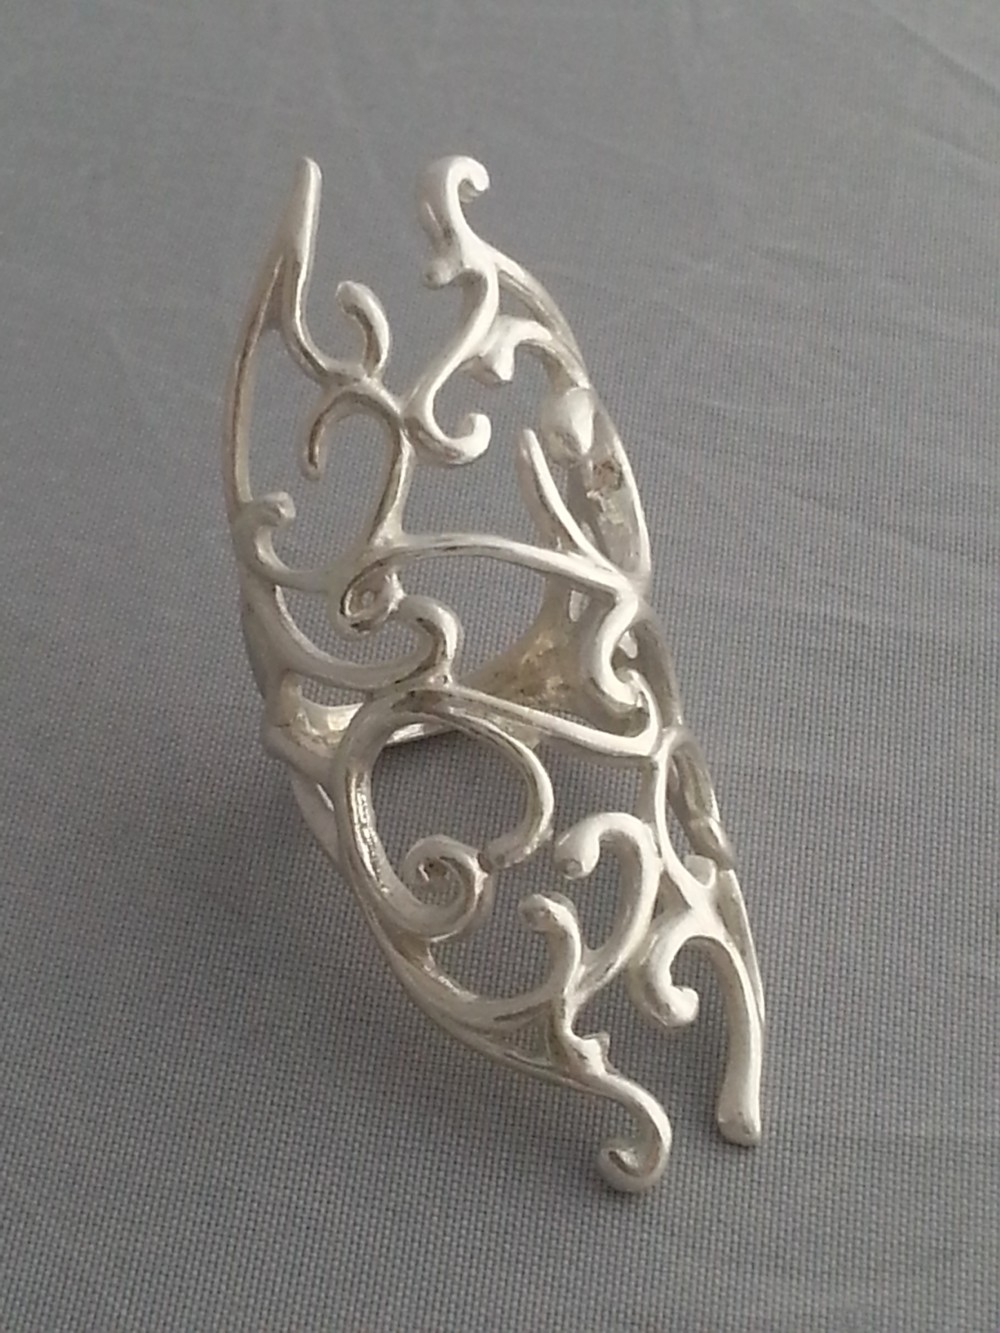 How To Use Silver Clay At Home